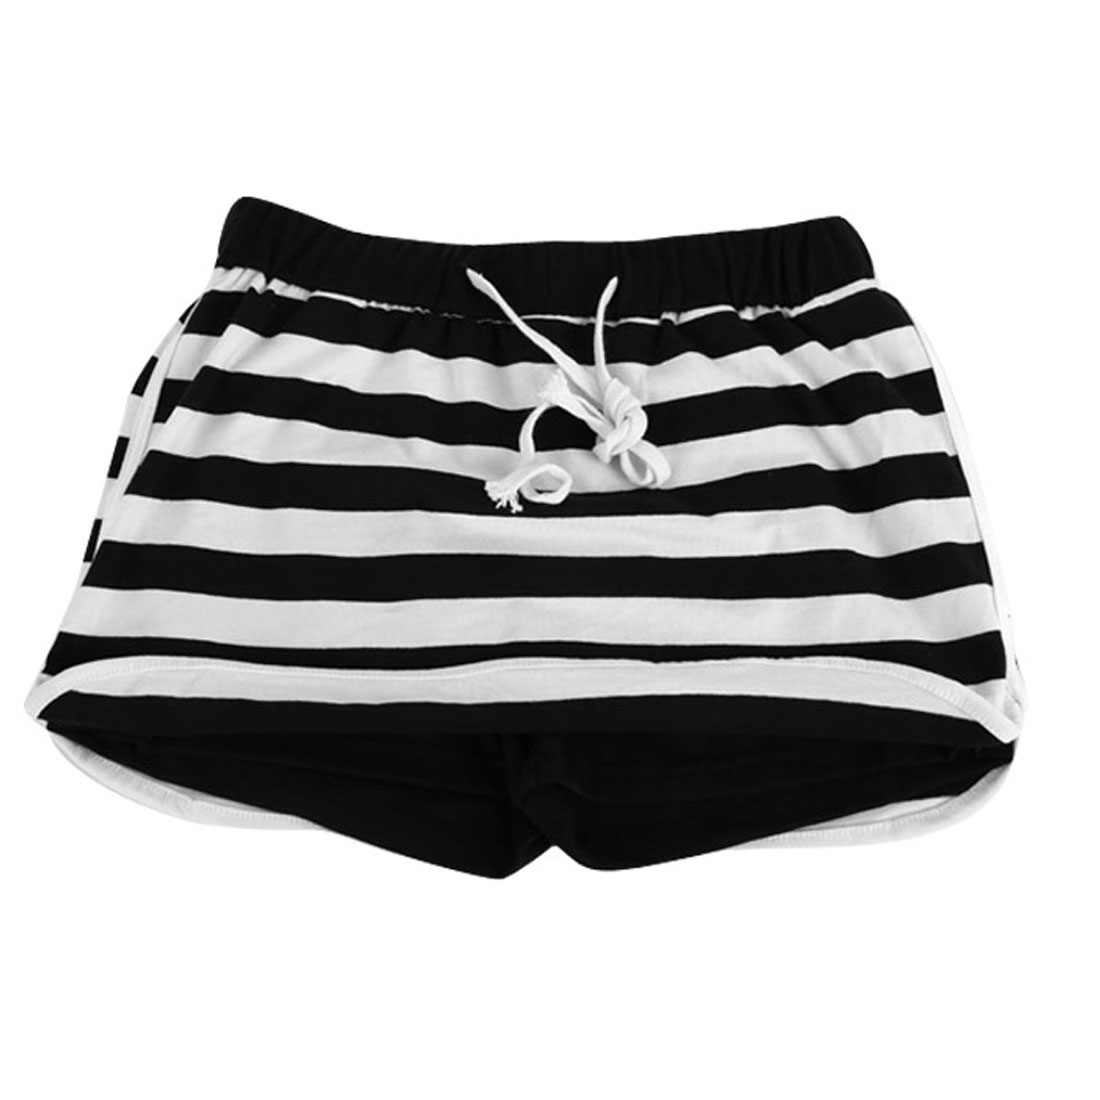 Ladies Stripes Prints Elastic Waist High Waist Sexy Skirt Black White S